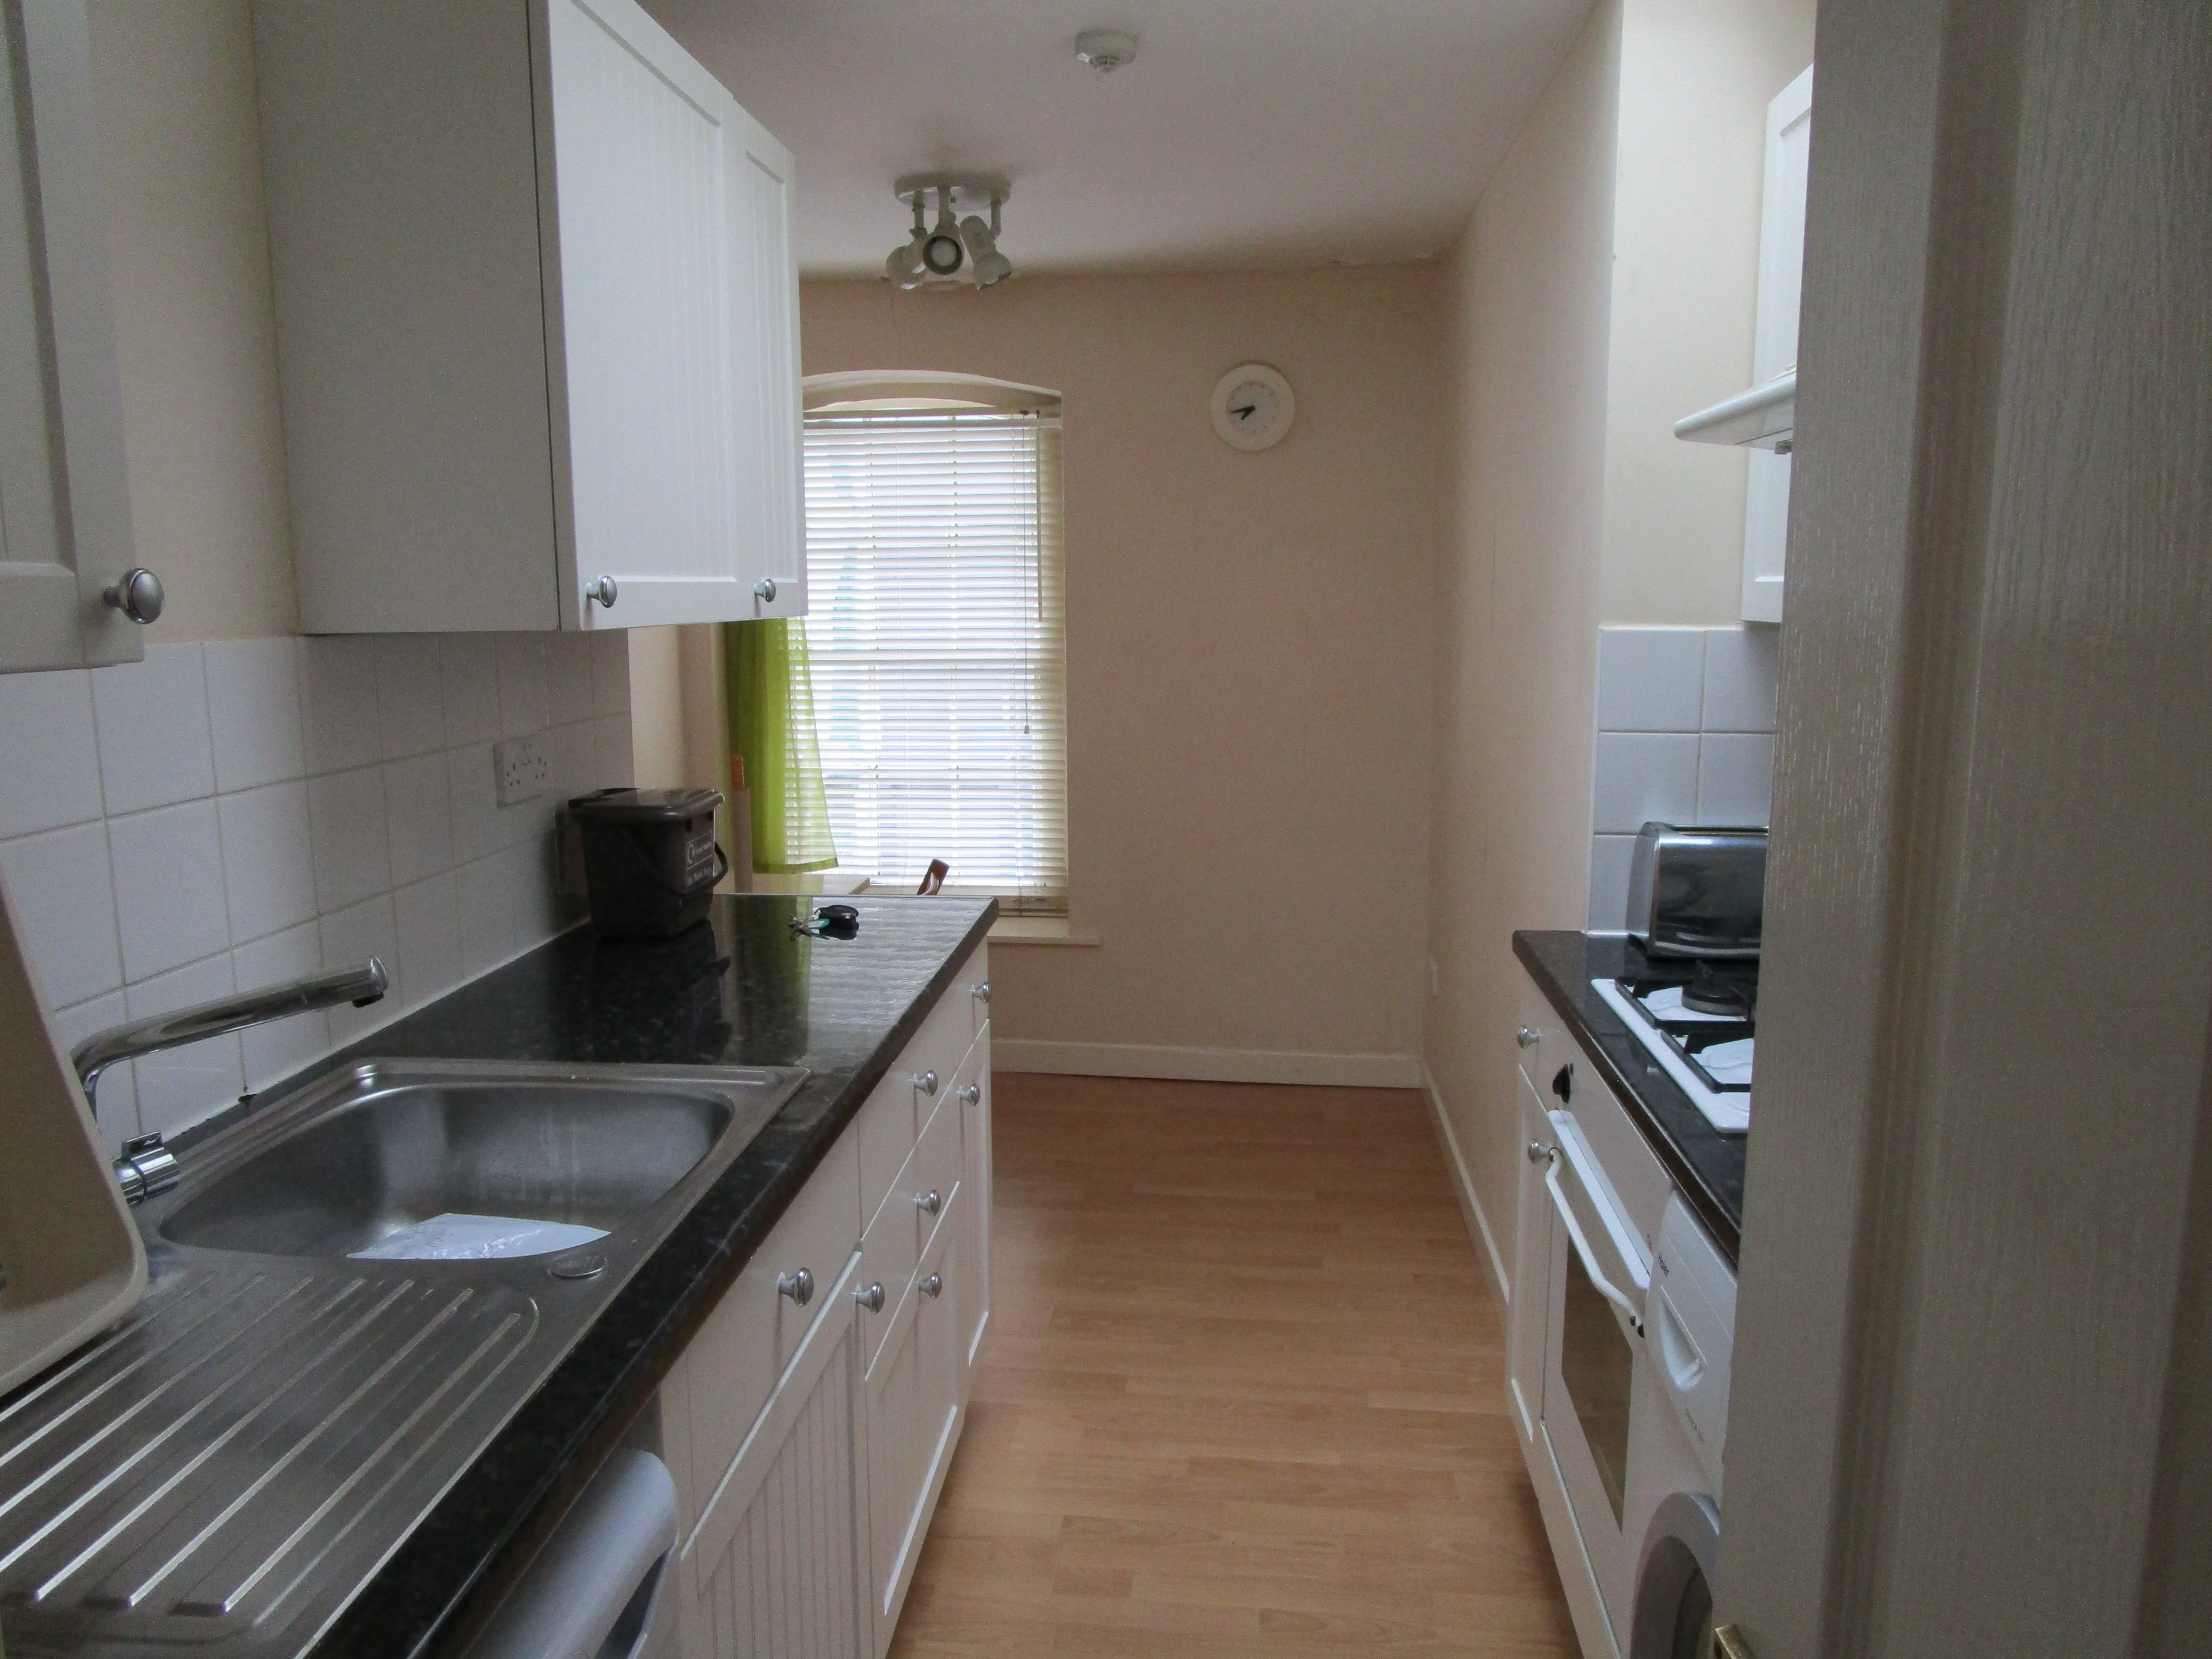 3 bed flat to rent in Princess Victoria Street, Clifton - Property Image 1